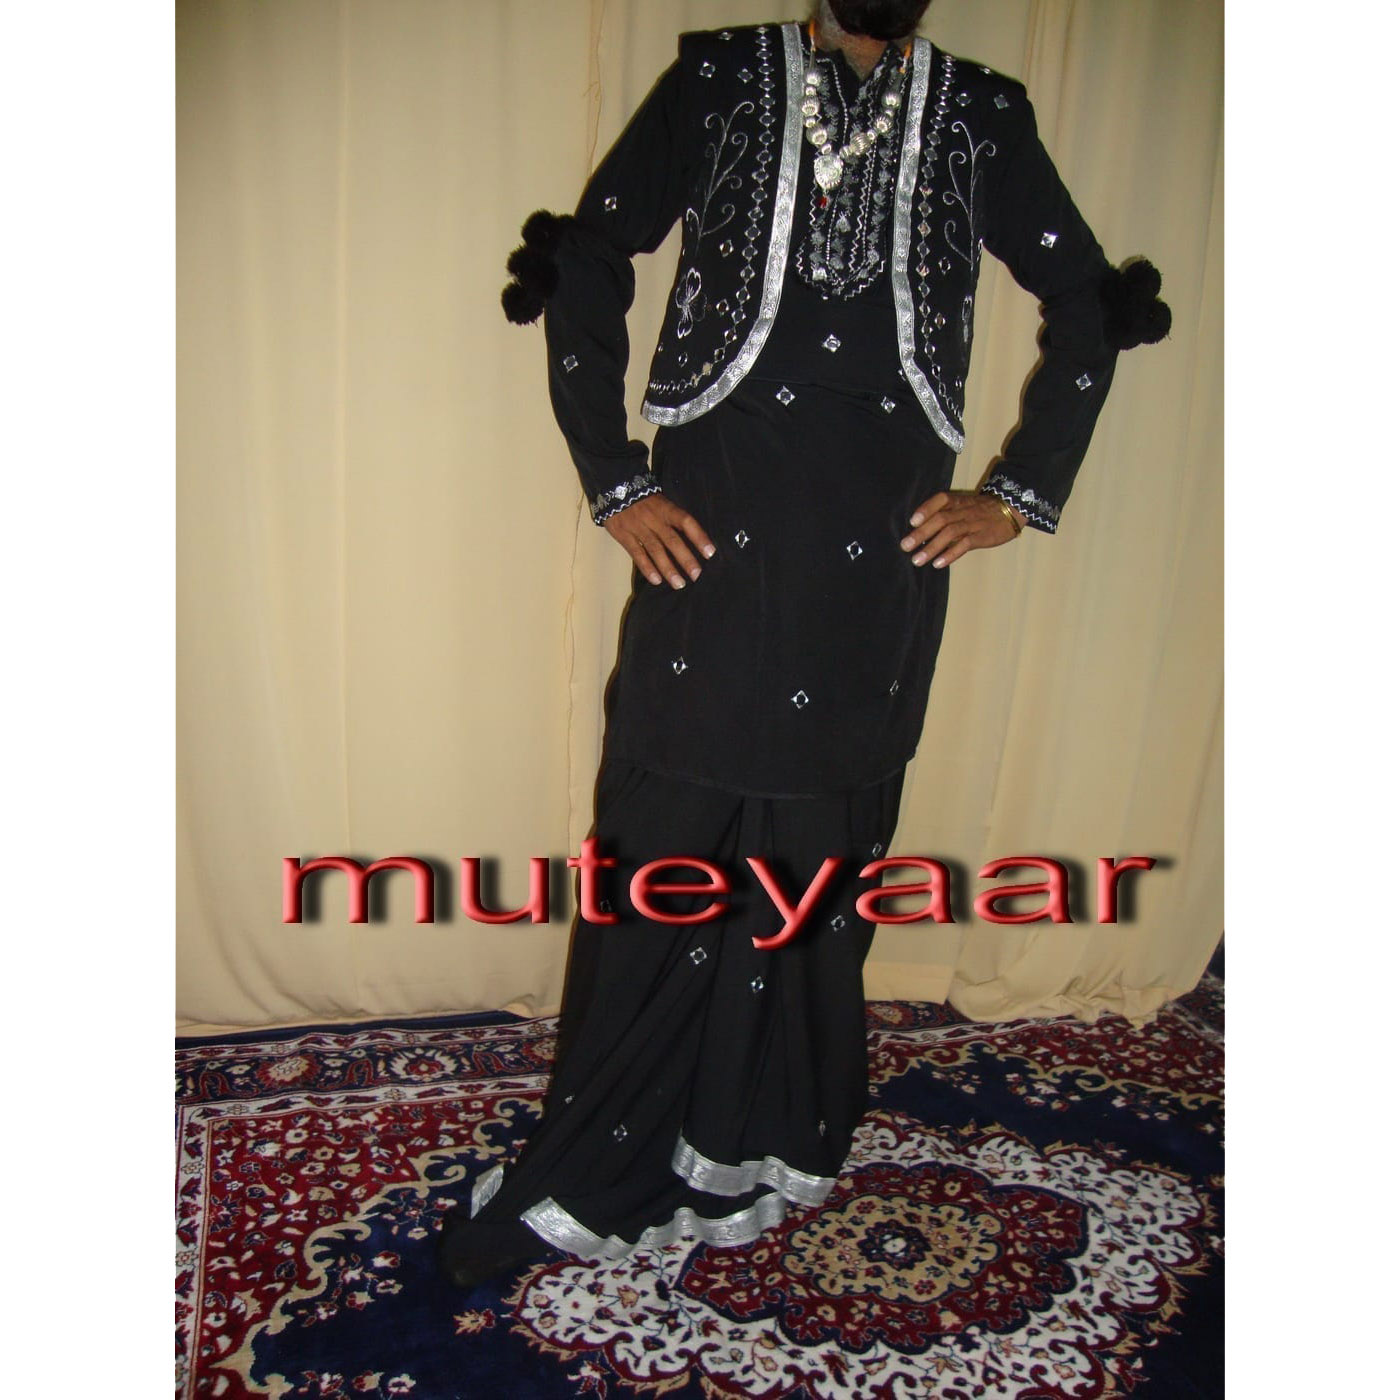 Black Mirrors work Bhangra dress outfit costume 1